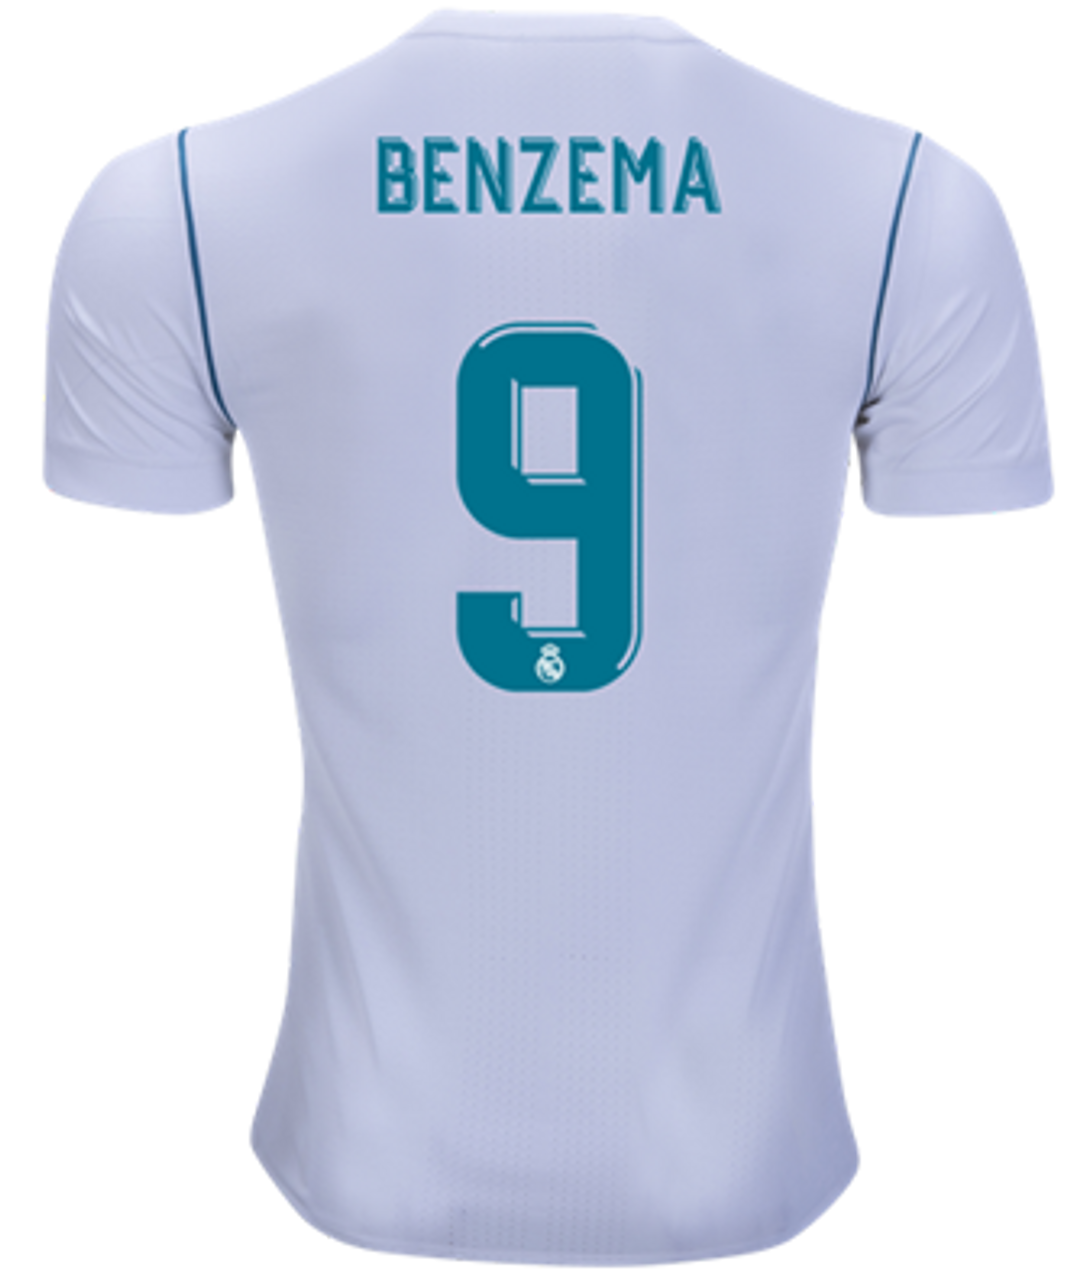 c0f79bef0 ADIDAS REAL MADRID 2018 AUTHENTIC HOME BENZEMA JERSEY - Soccer Plus